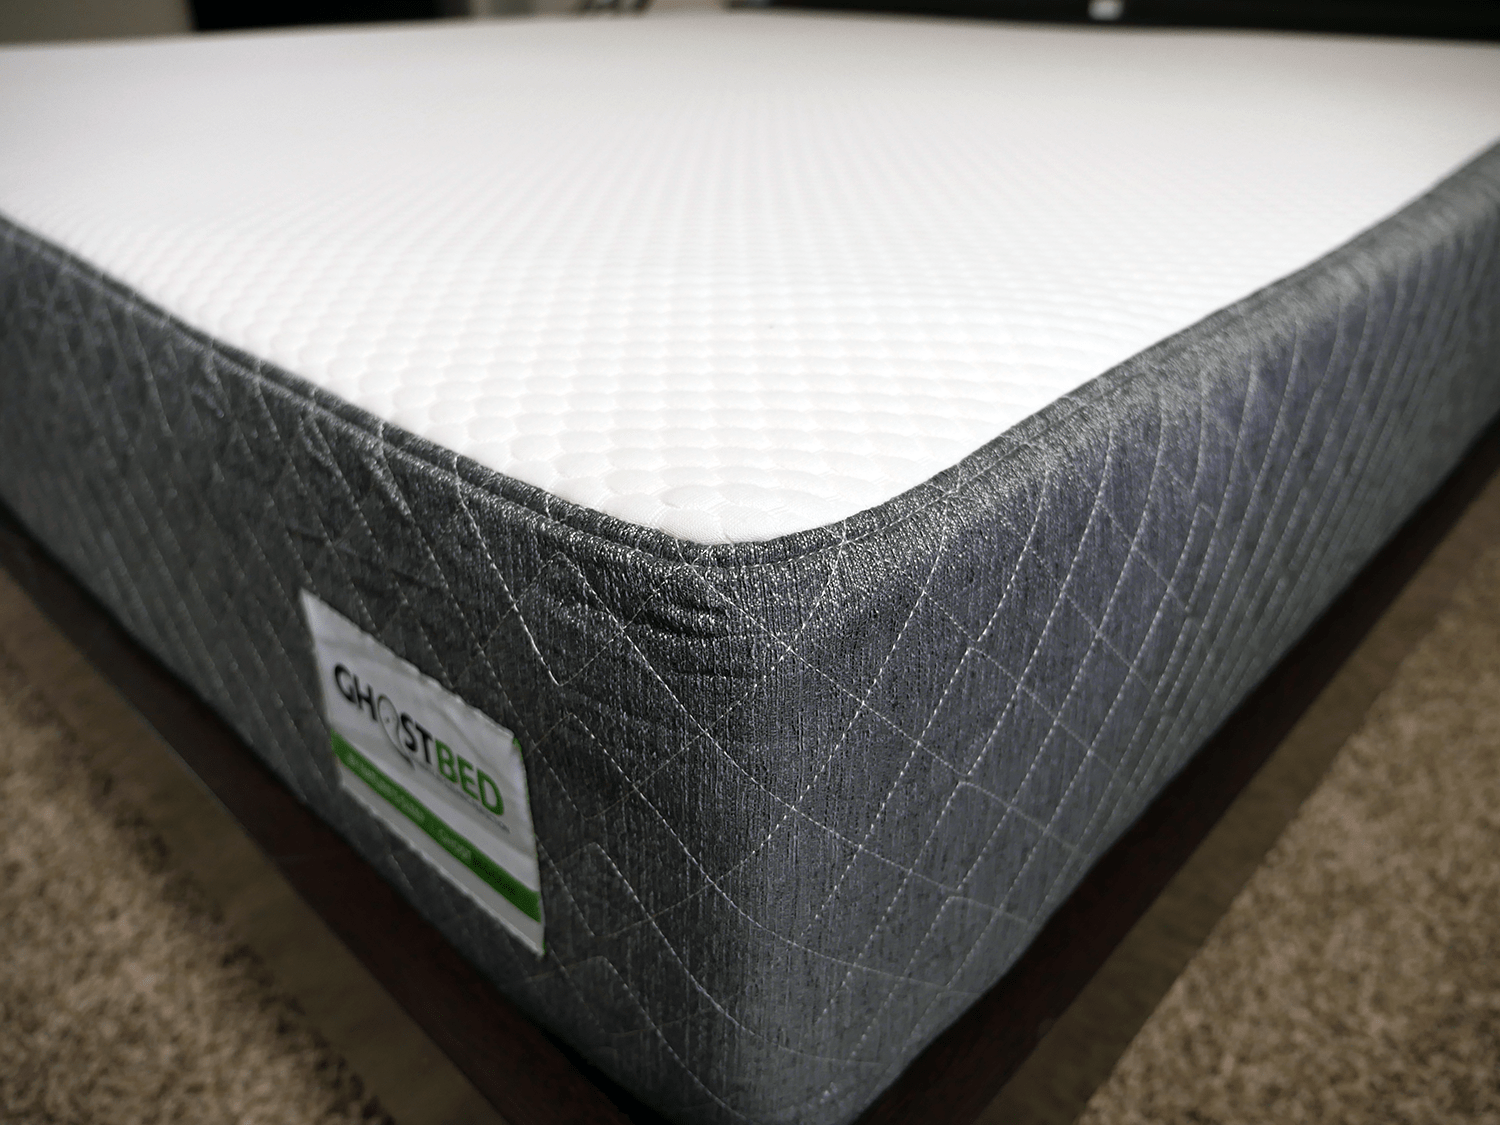 ghostbed-mattress-cover GhostBed vs. Purple Mattress Review